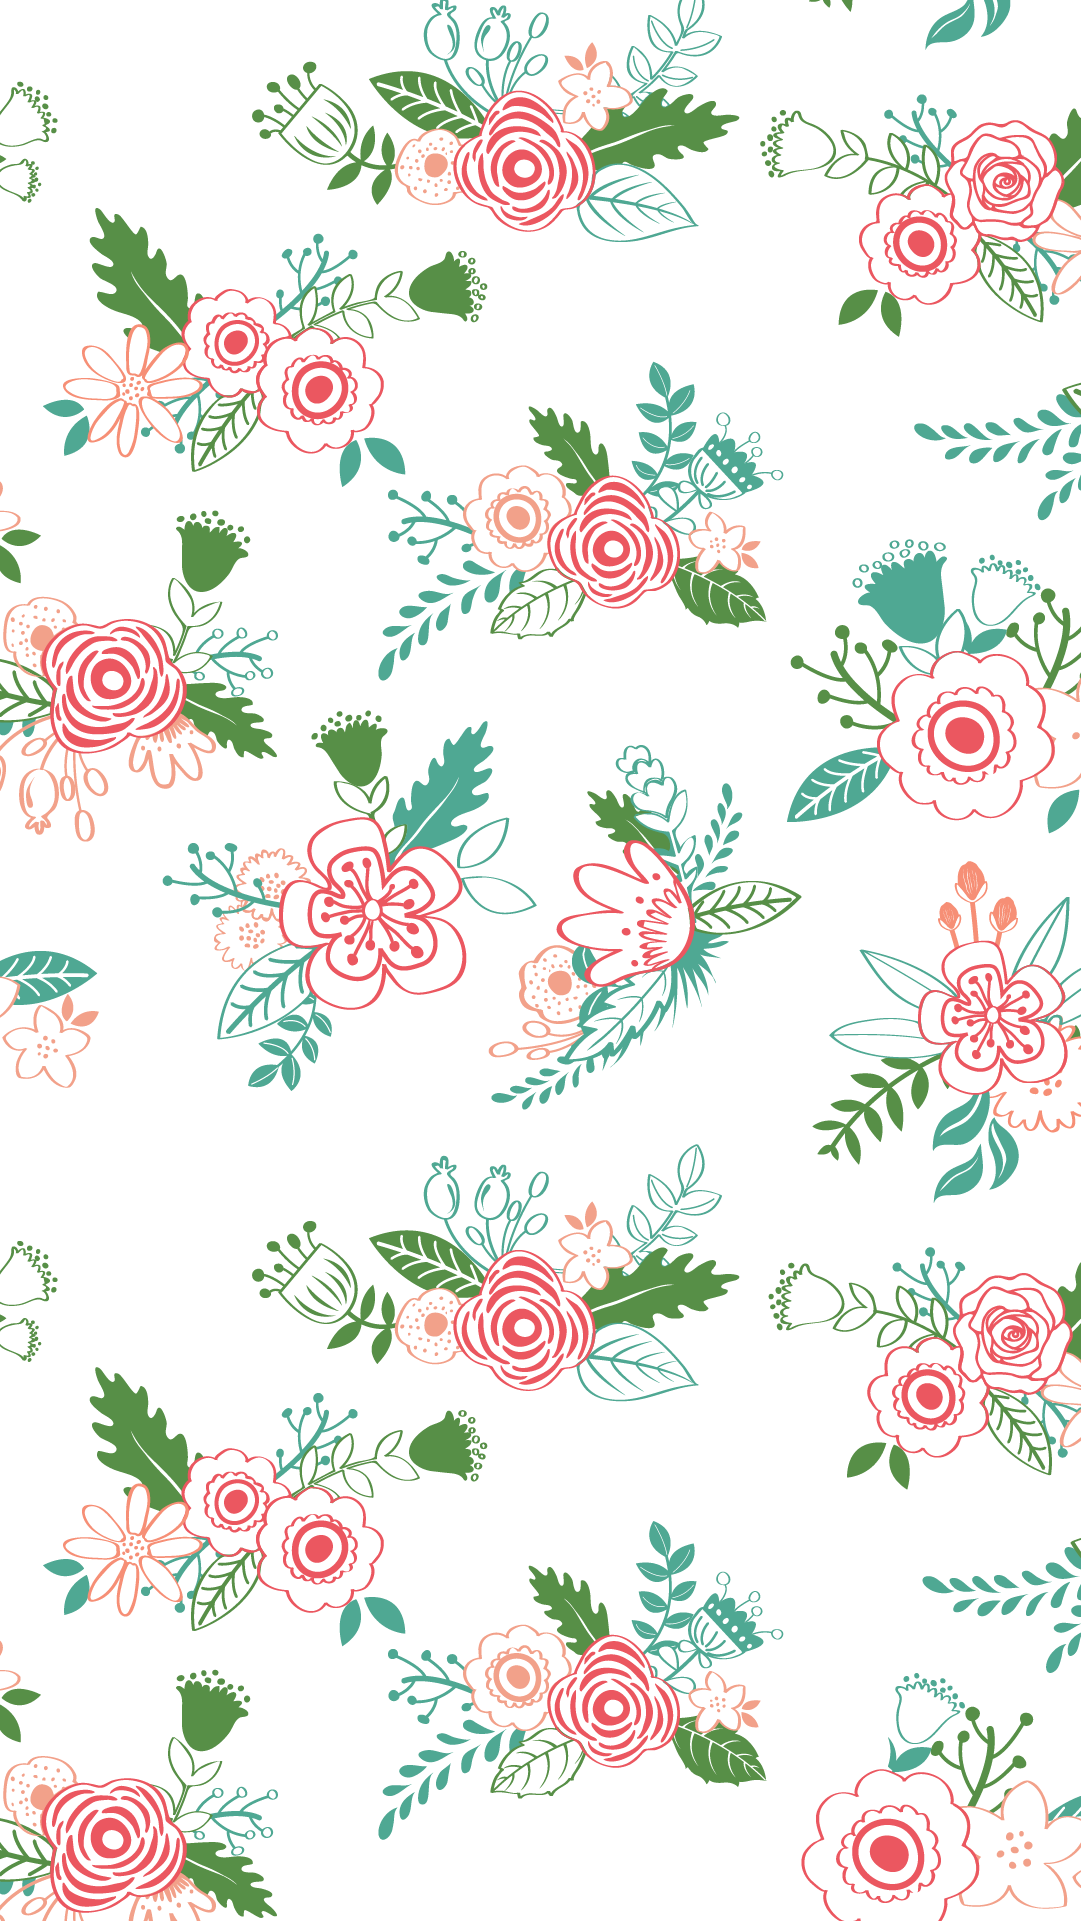 white mint green pink illustrated floral flowers iphone